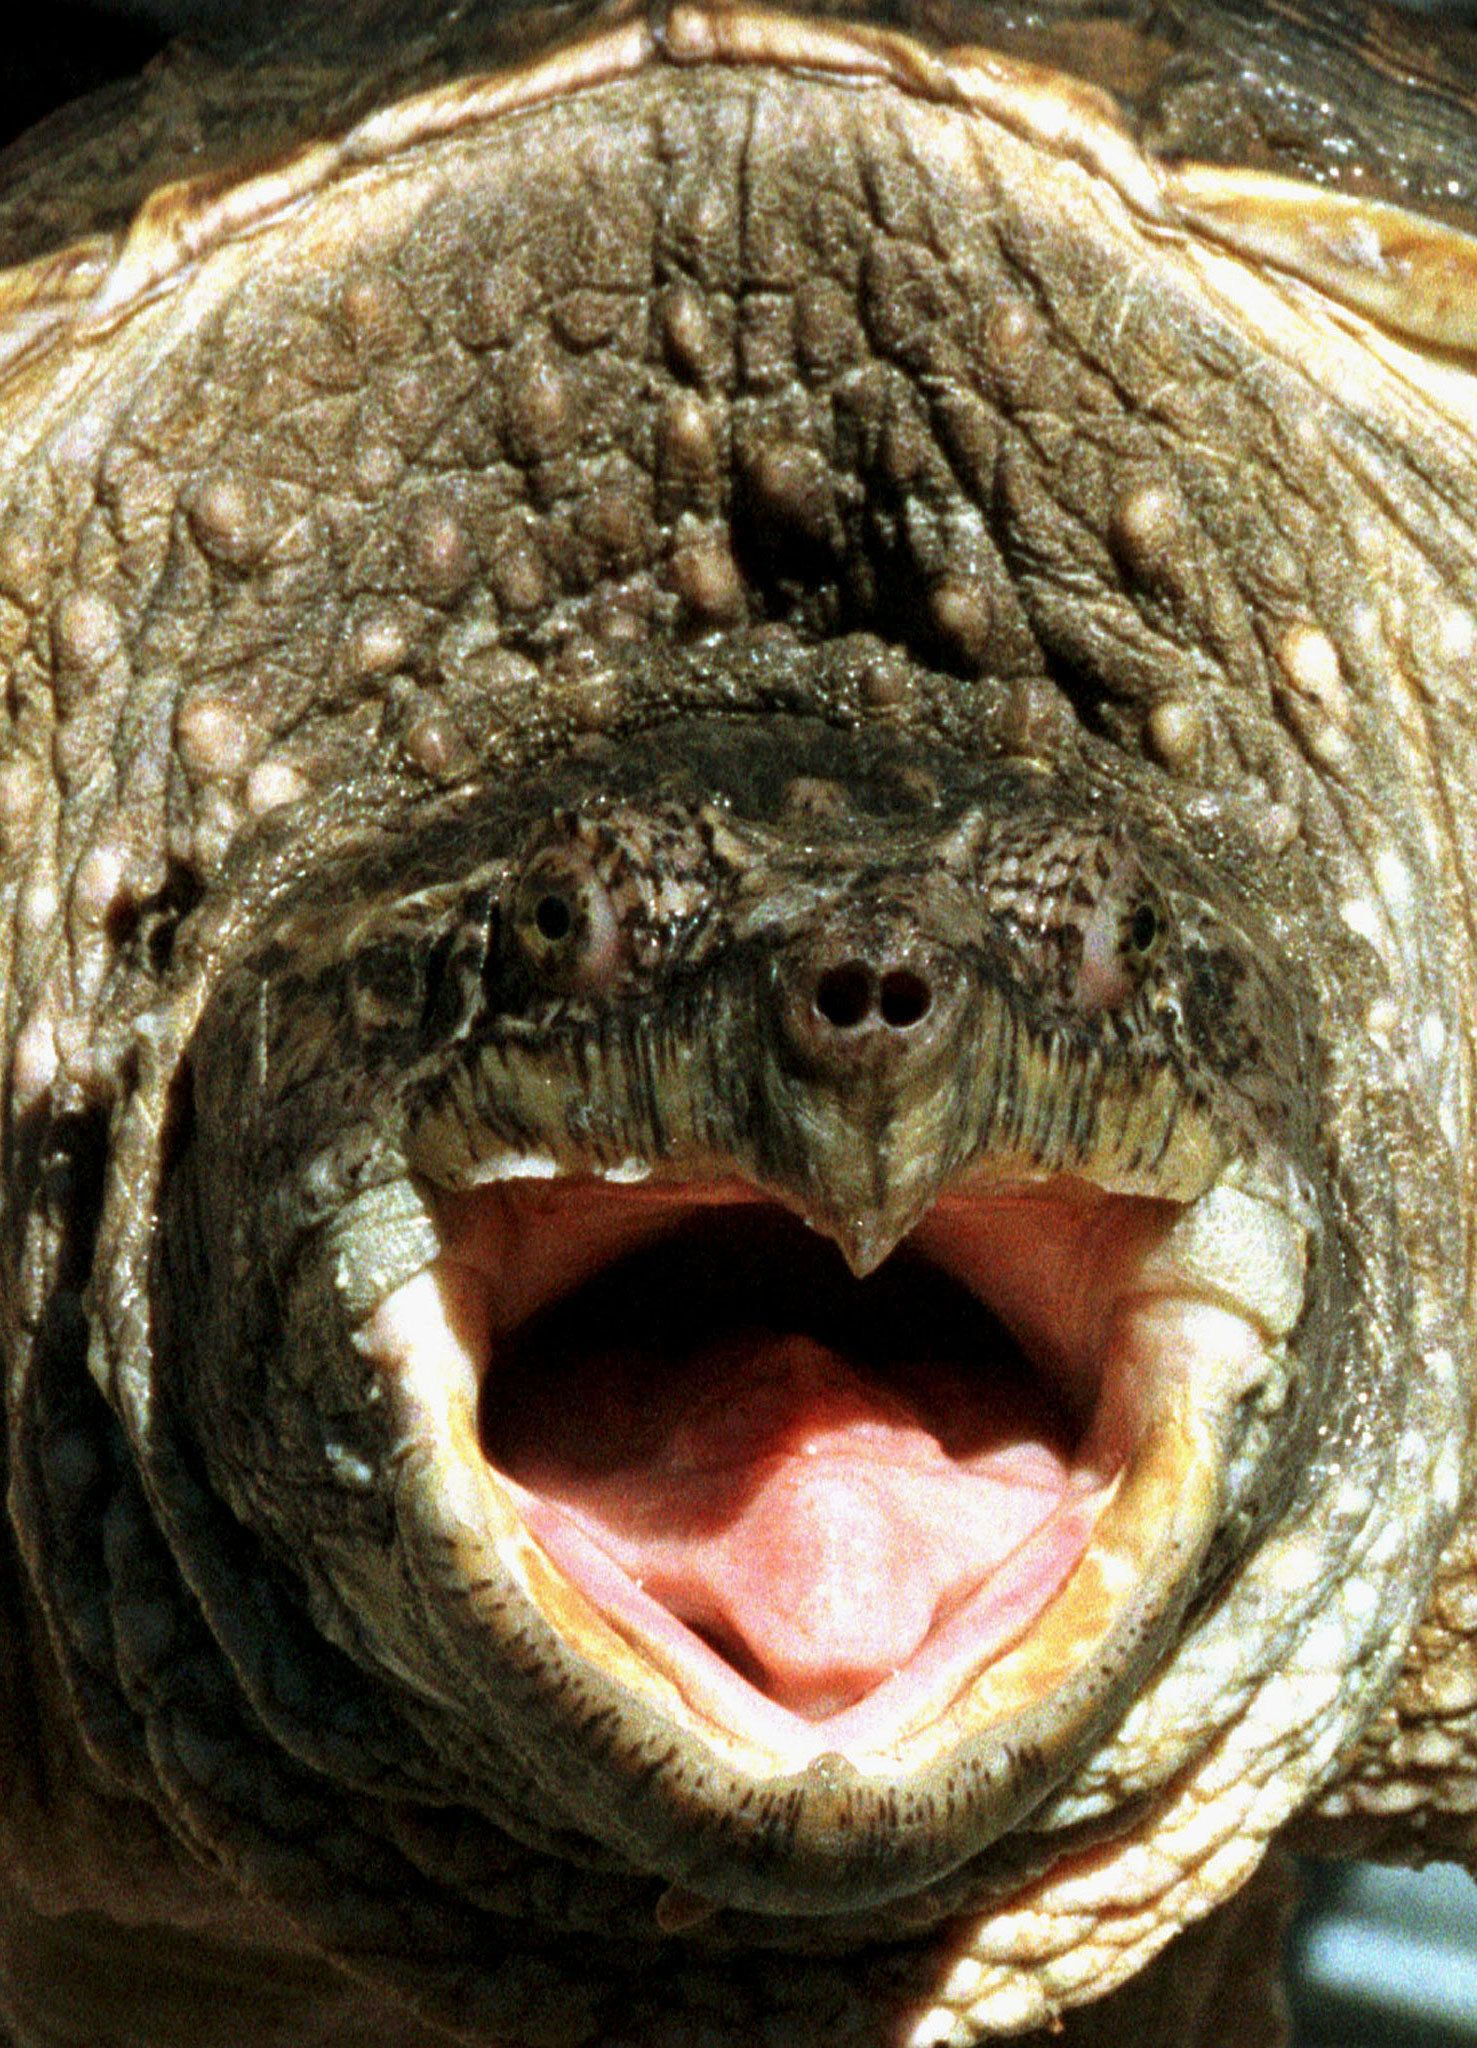 This 55-pound alligator snapping turtle is not the one who ate a finger in Louisiana.